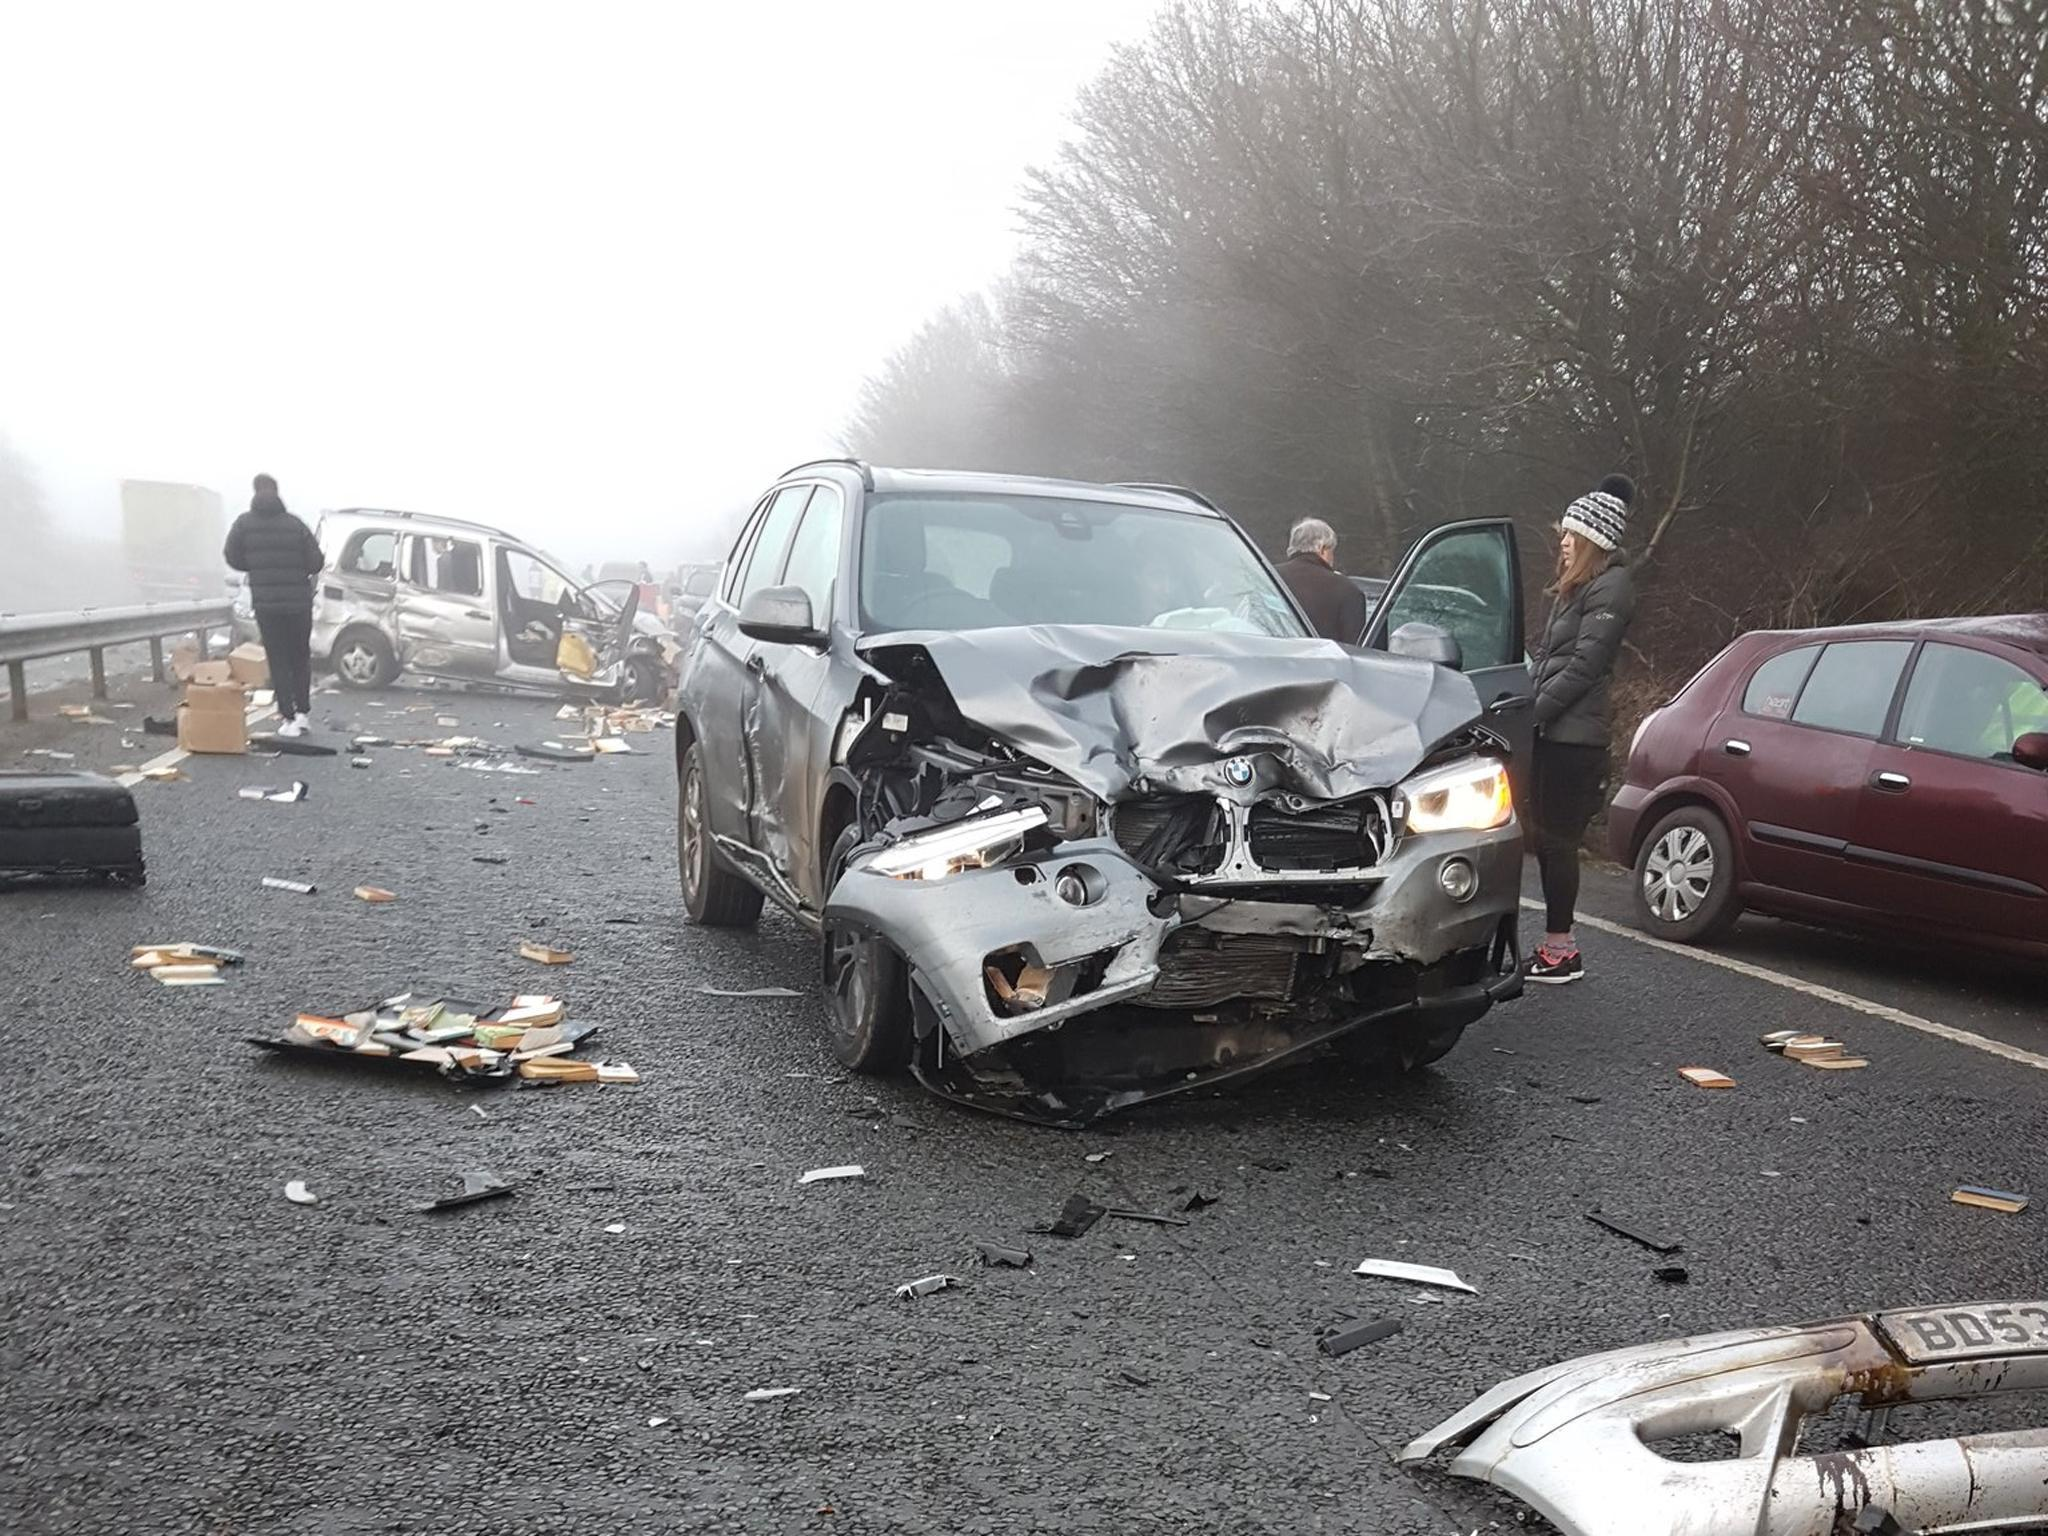 A40 crash: Woman dies after huge pile-up near Witney | The Independent